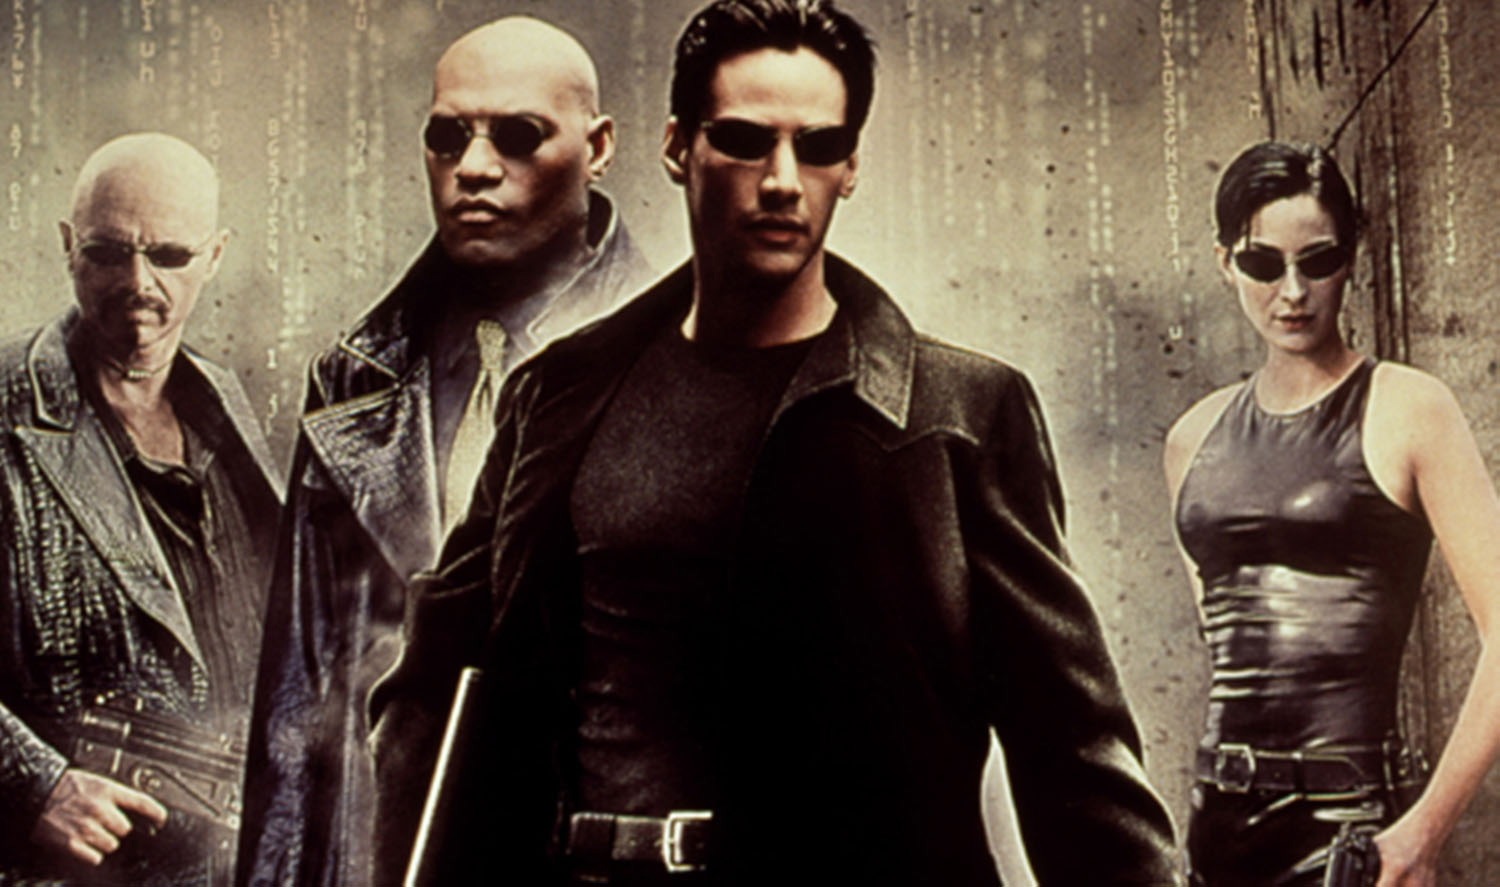 Keanu_Reeves_matrix-group_O